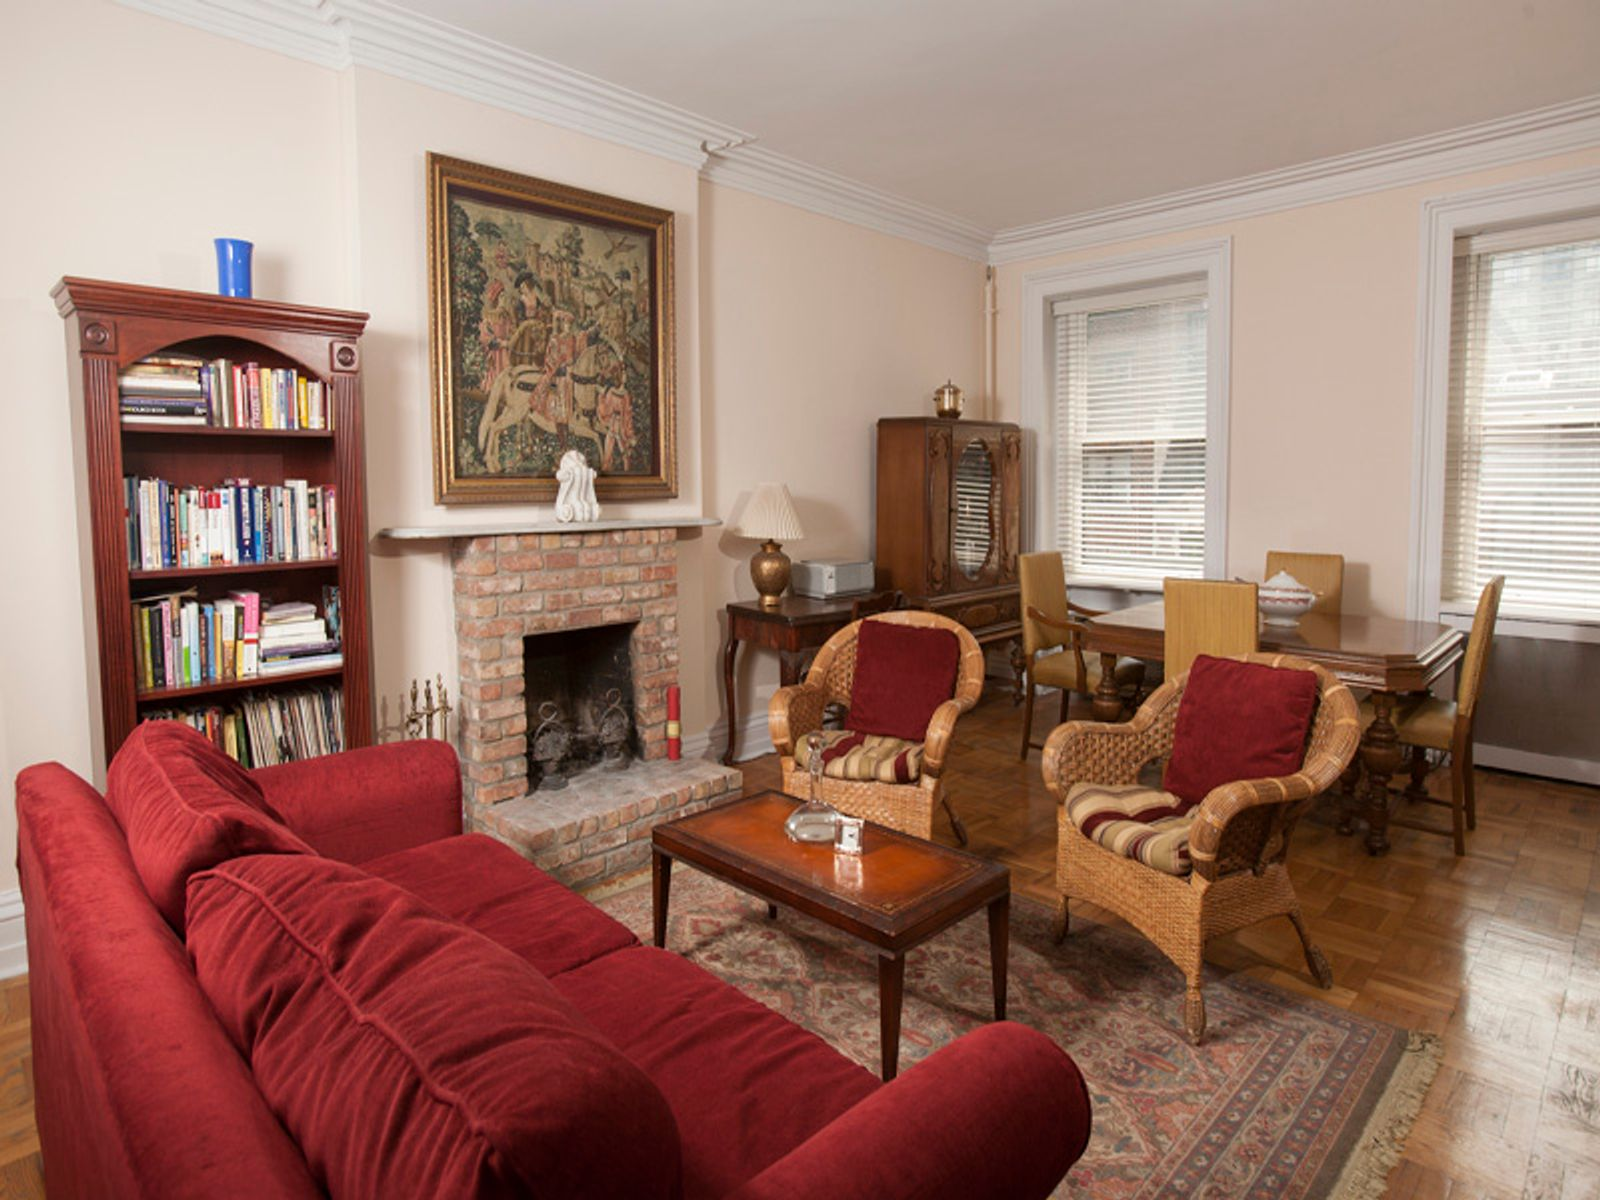 Landmark Brownstone Coop, New York NY Cooperative - New York City Real Estate